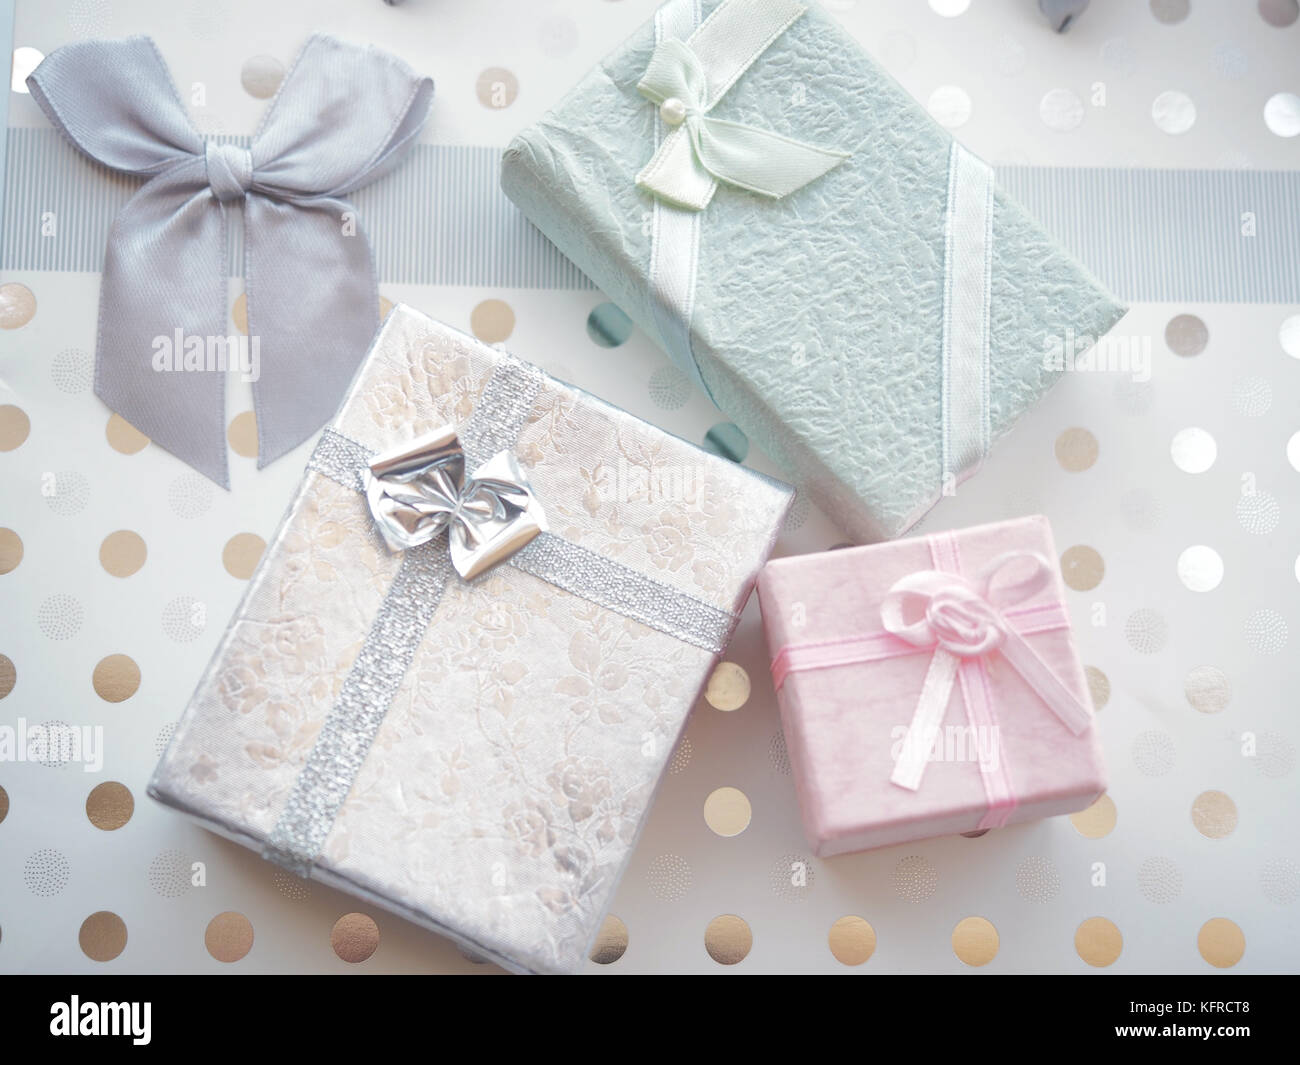 Wrapped Wedding Gifts Stock Photos & Wrapped Wedding Gifts Stock ...